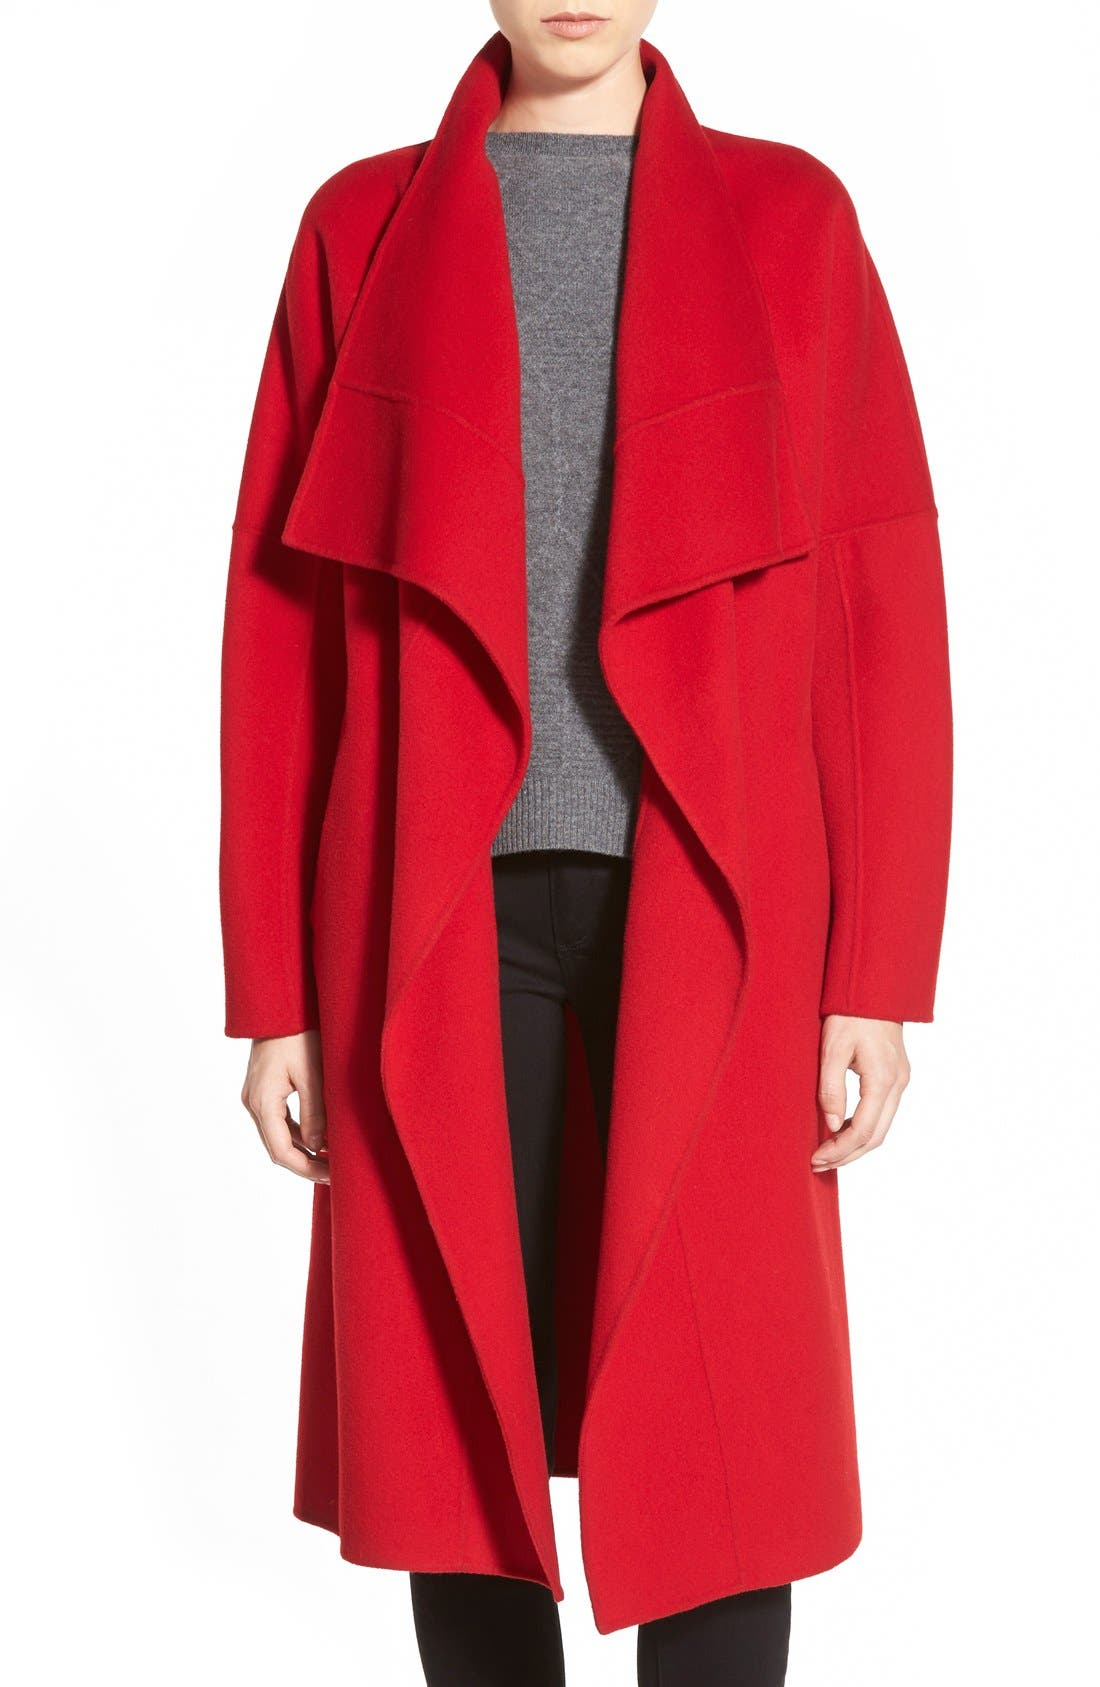 Main Image - Badgley Mischka 'Audrey' Long Double Face Wrap Coat